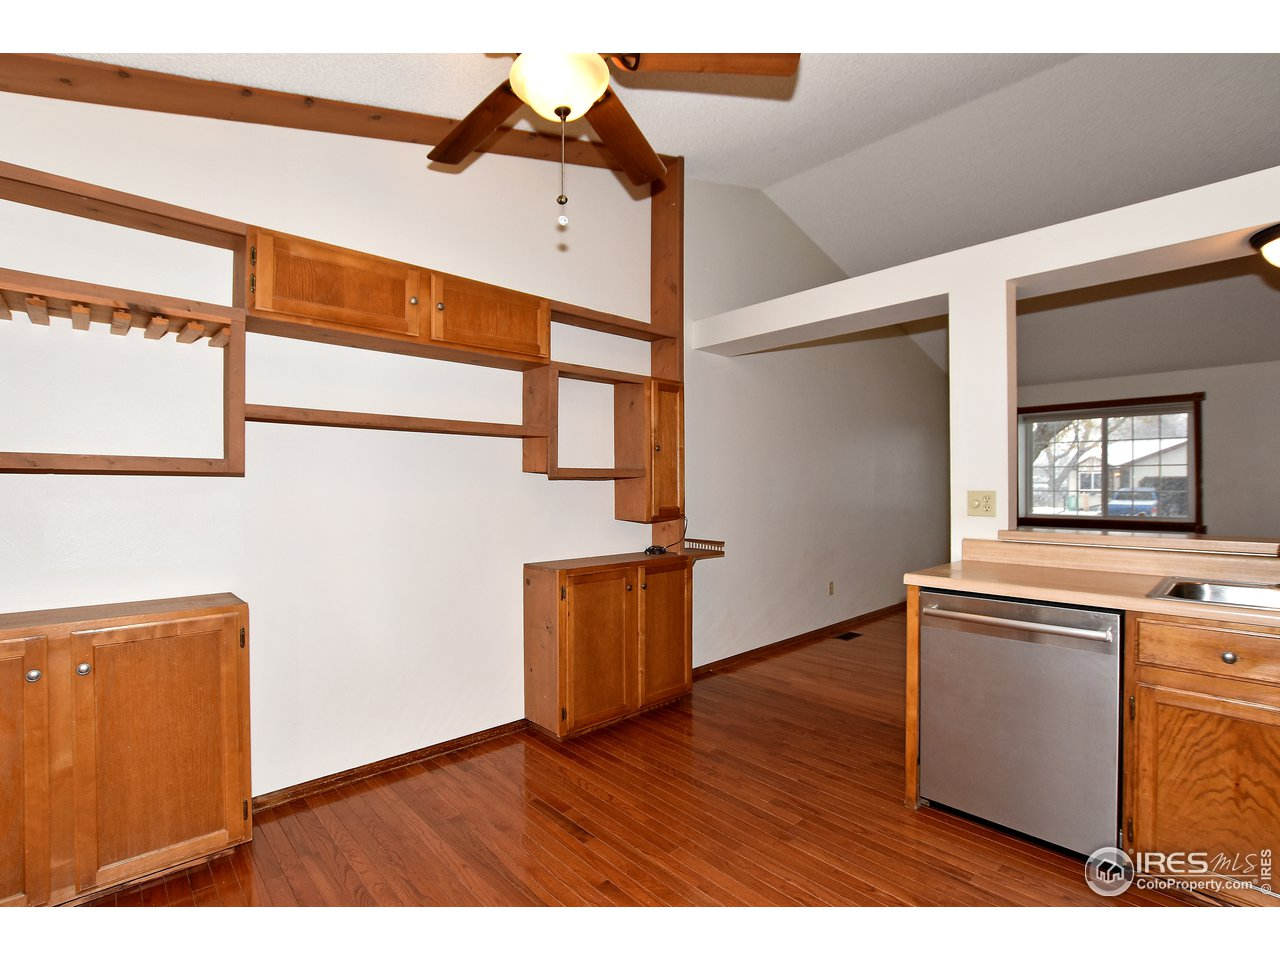 Lots of storage available, plus wine rack.